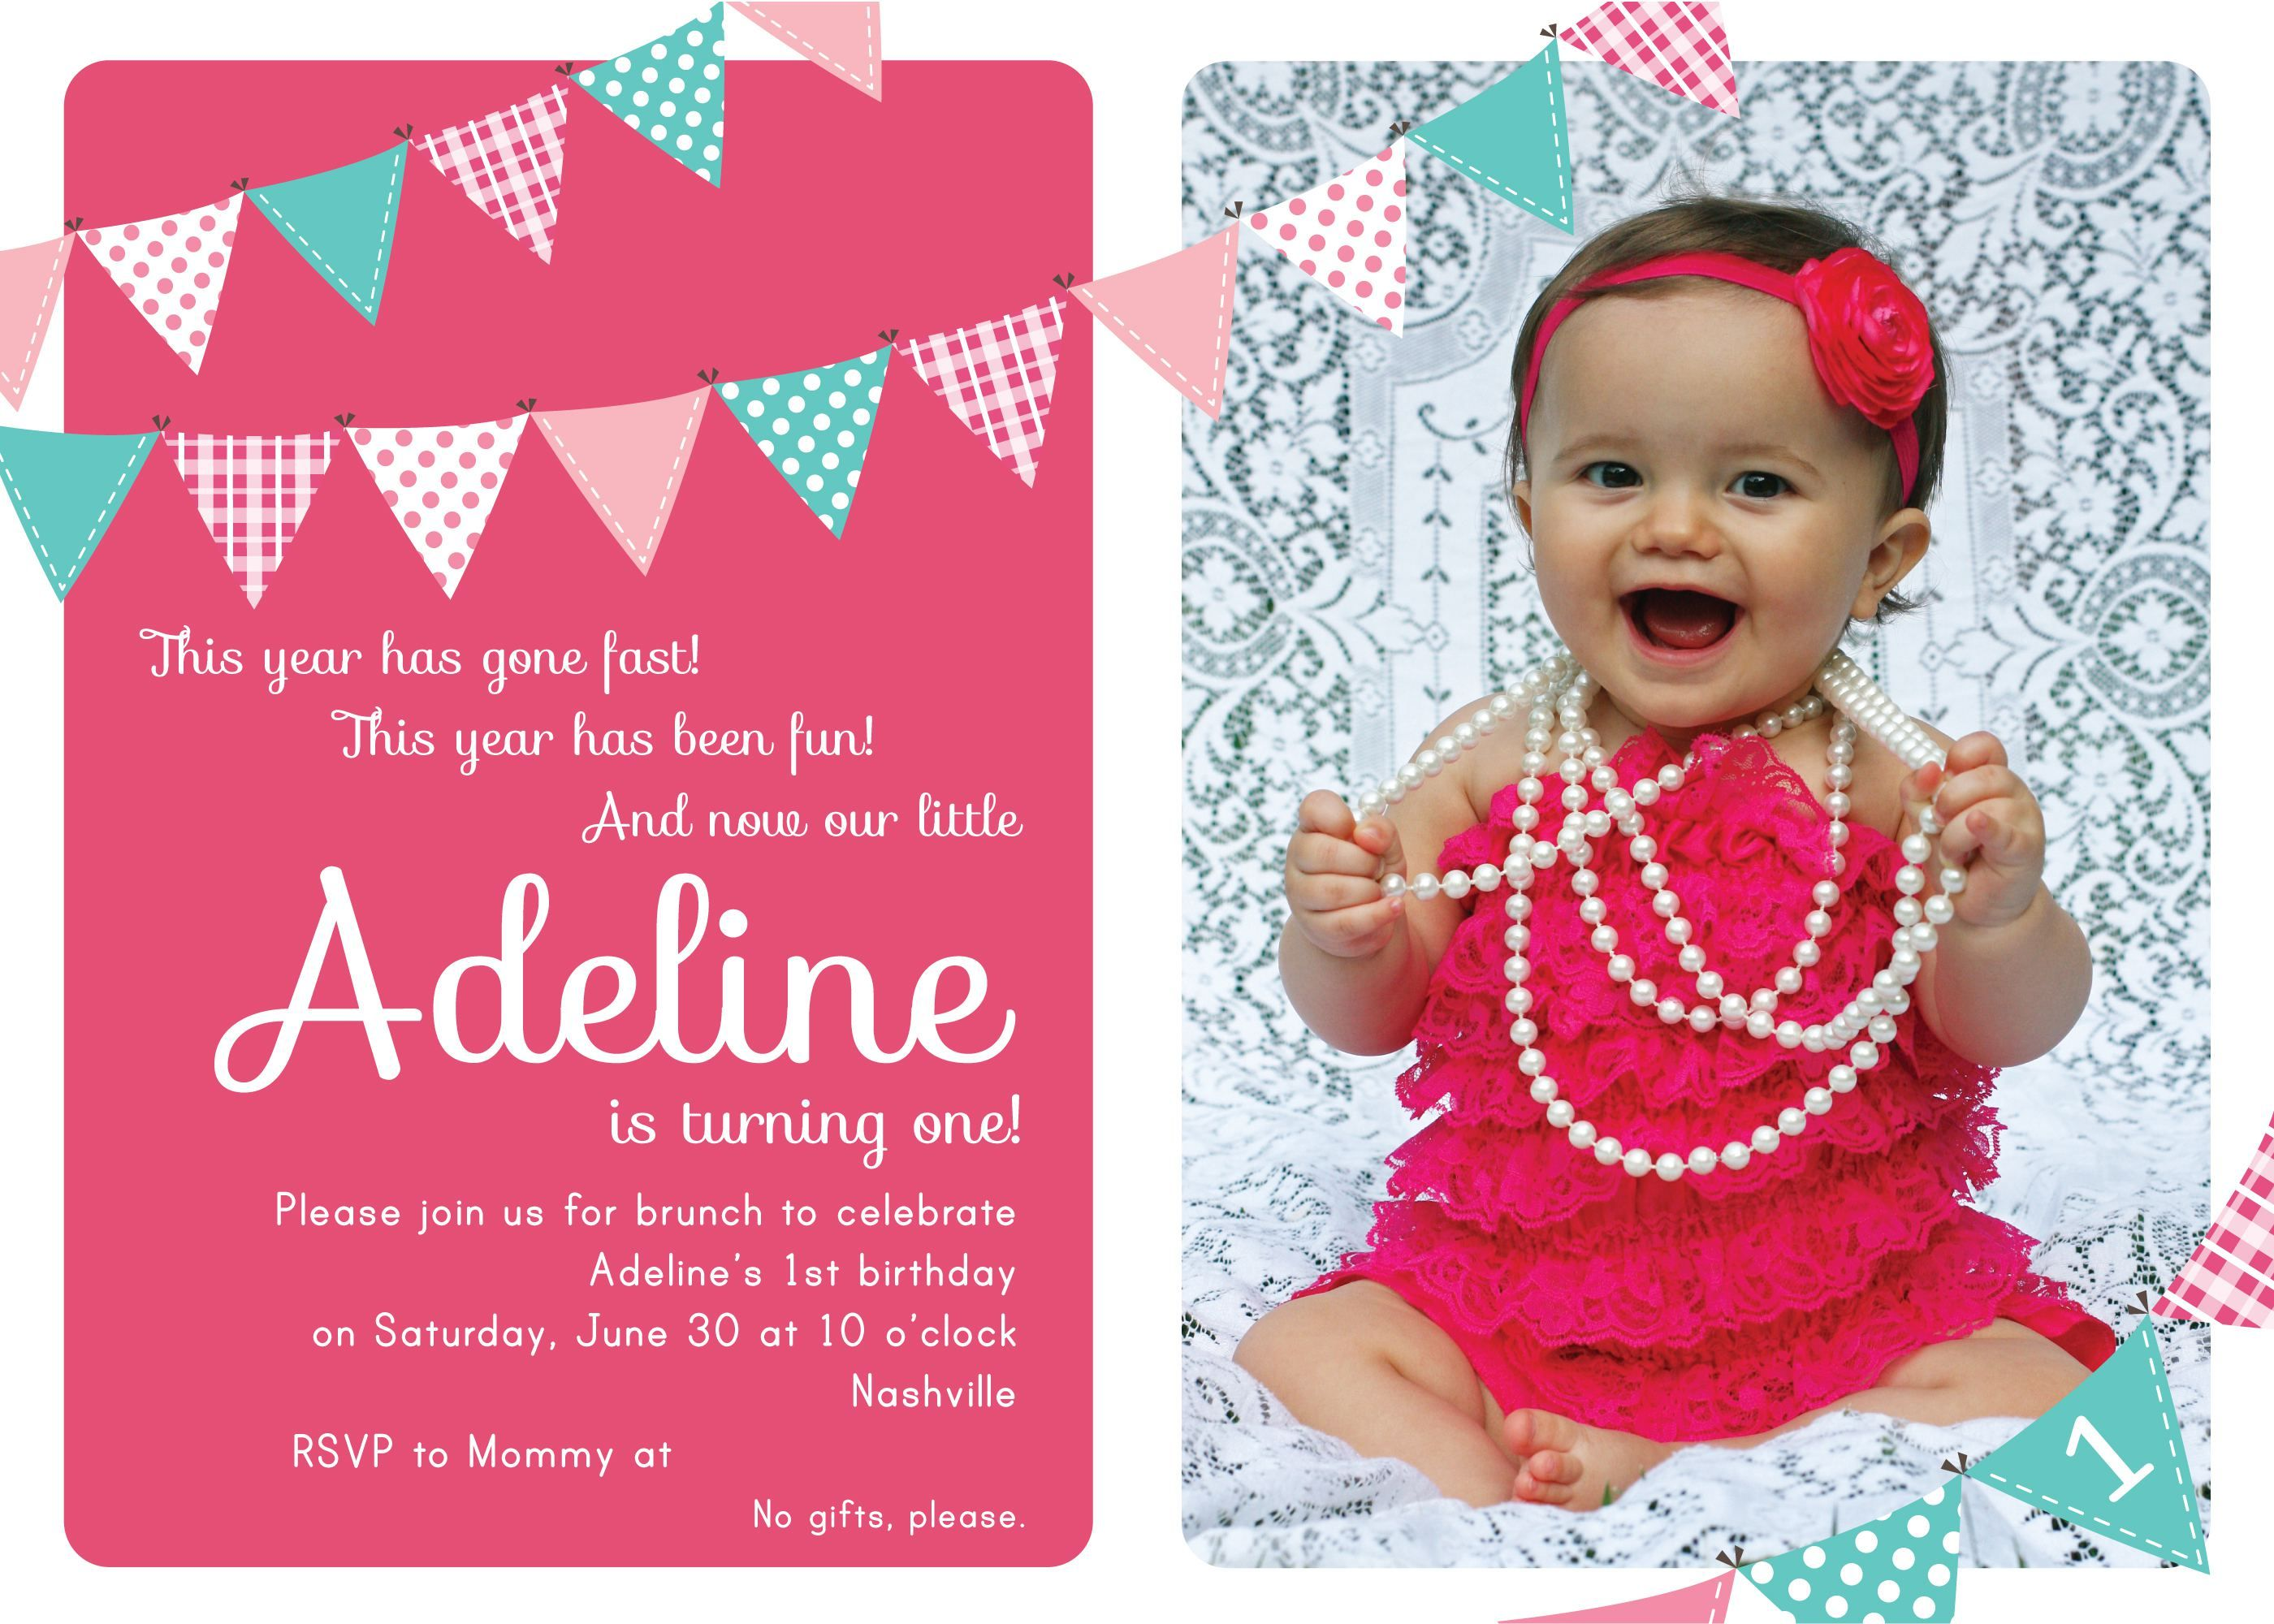 Invitation Birthday Card Invitation Birthday Cards Templates Su Birthday Invitation Card Template Cheap Birthday Invitations 1st Birthday Party Invitations